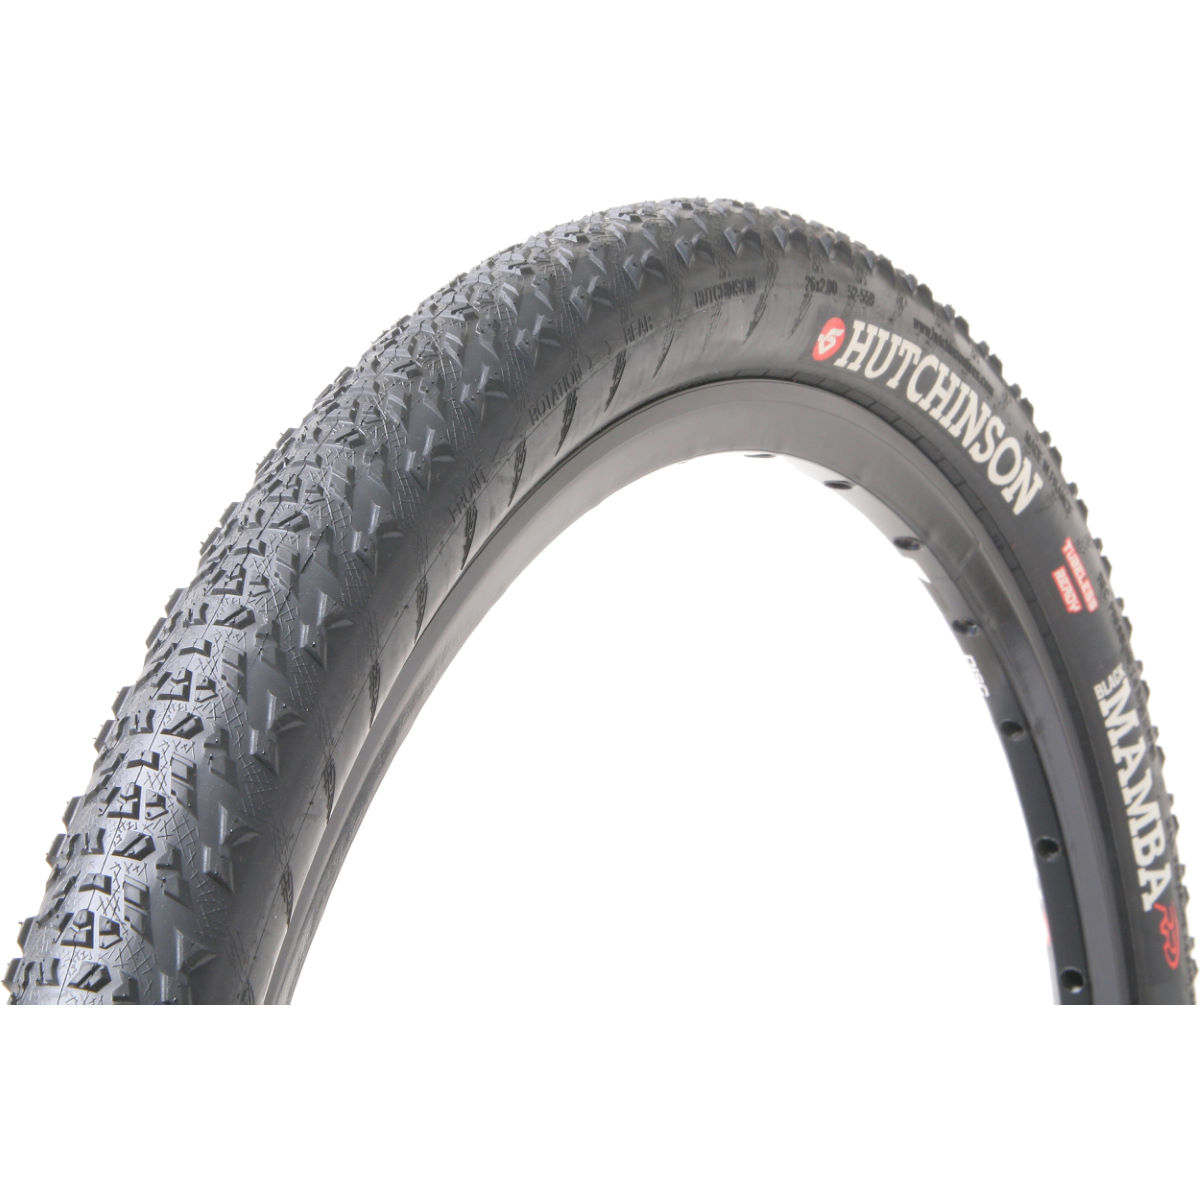 Pneu Hutchinson Black Mamba Tubeless Ready 29 pouces (souple) - Noir